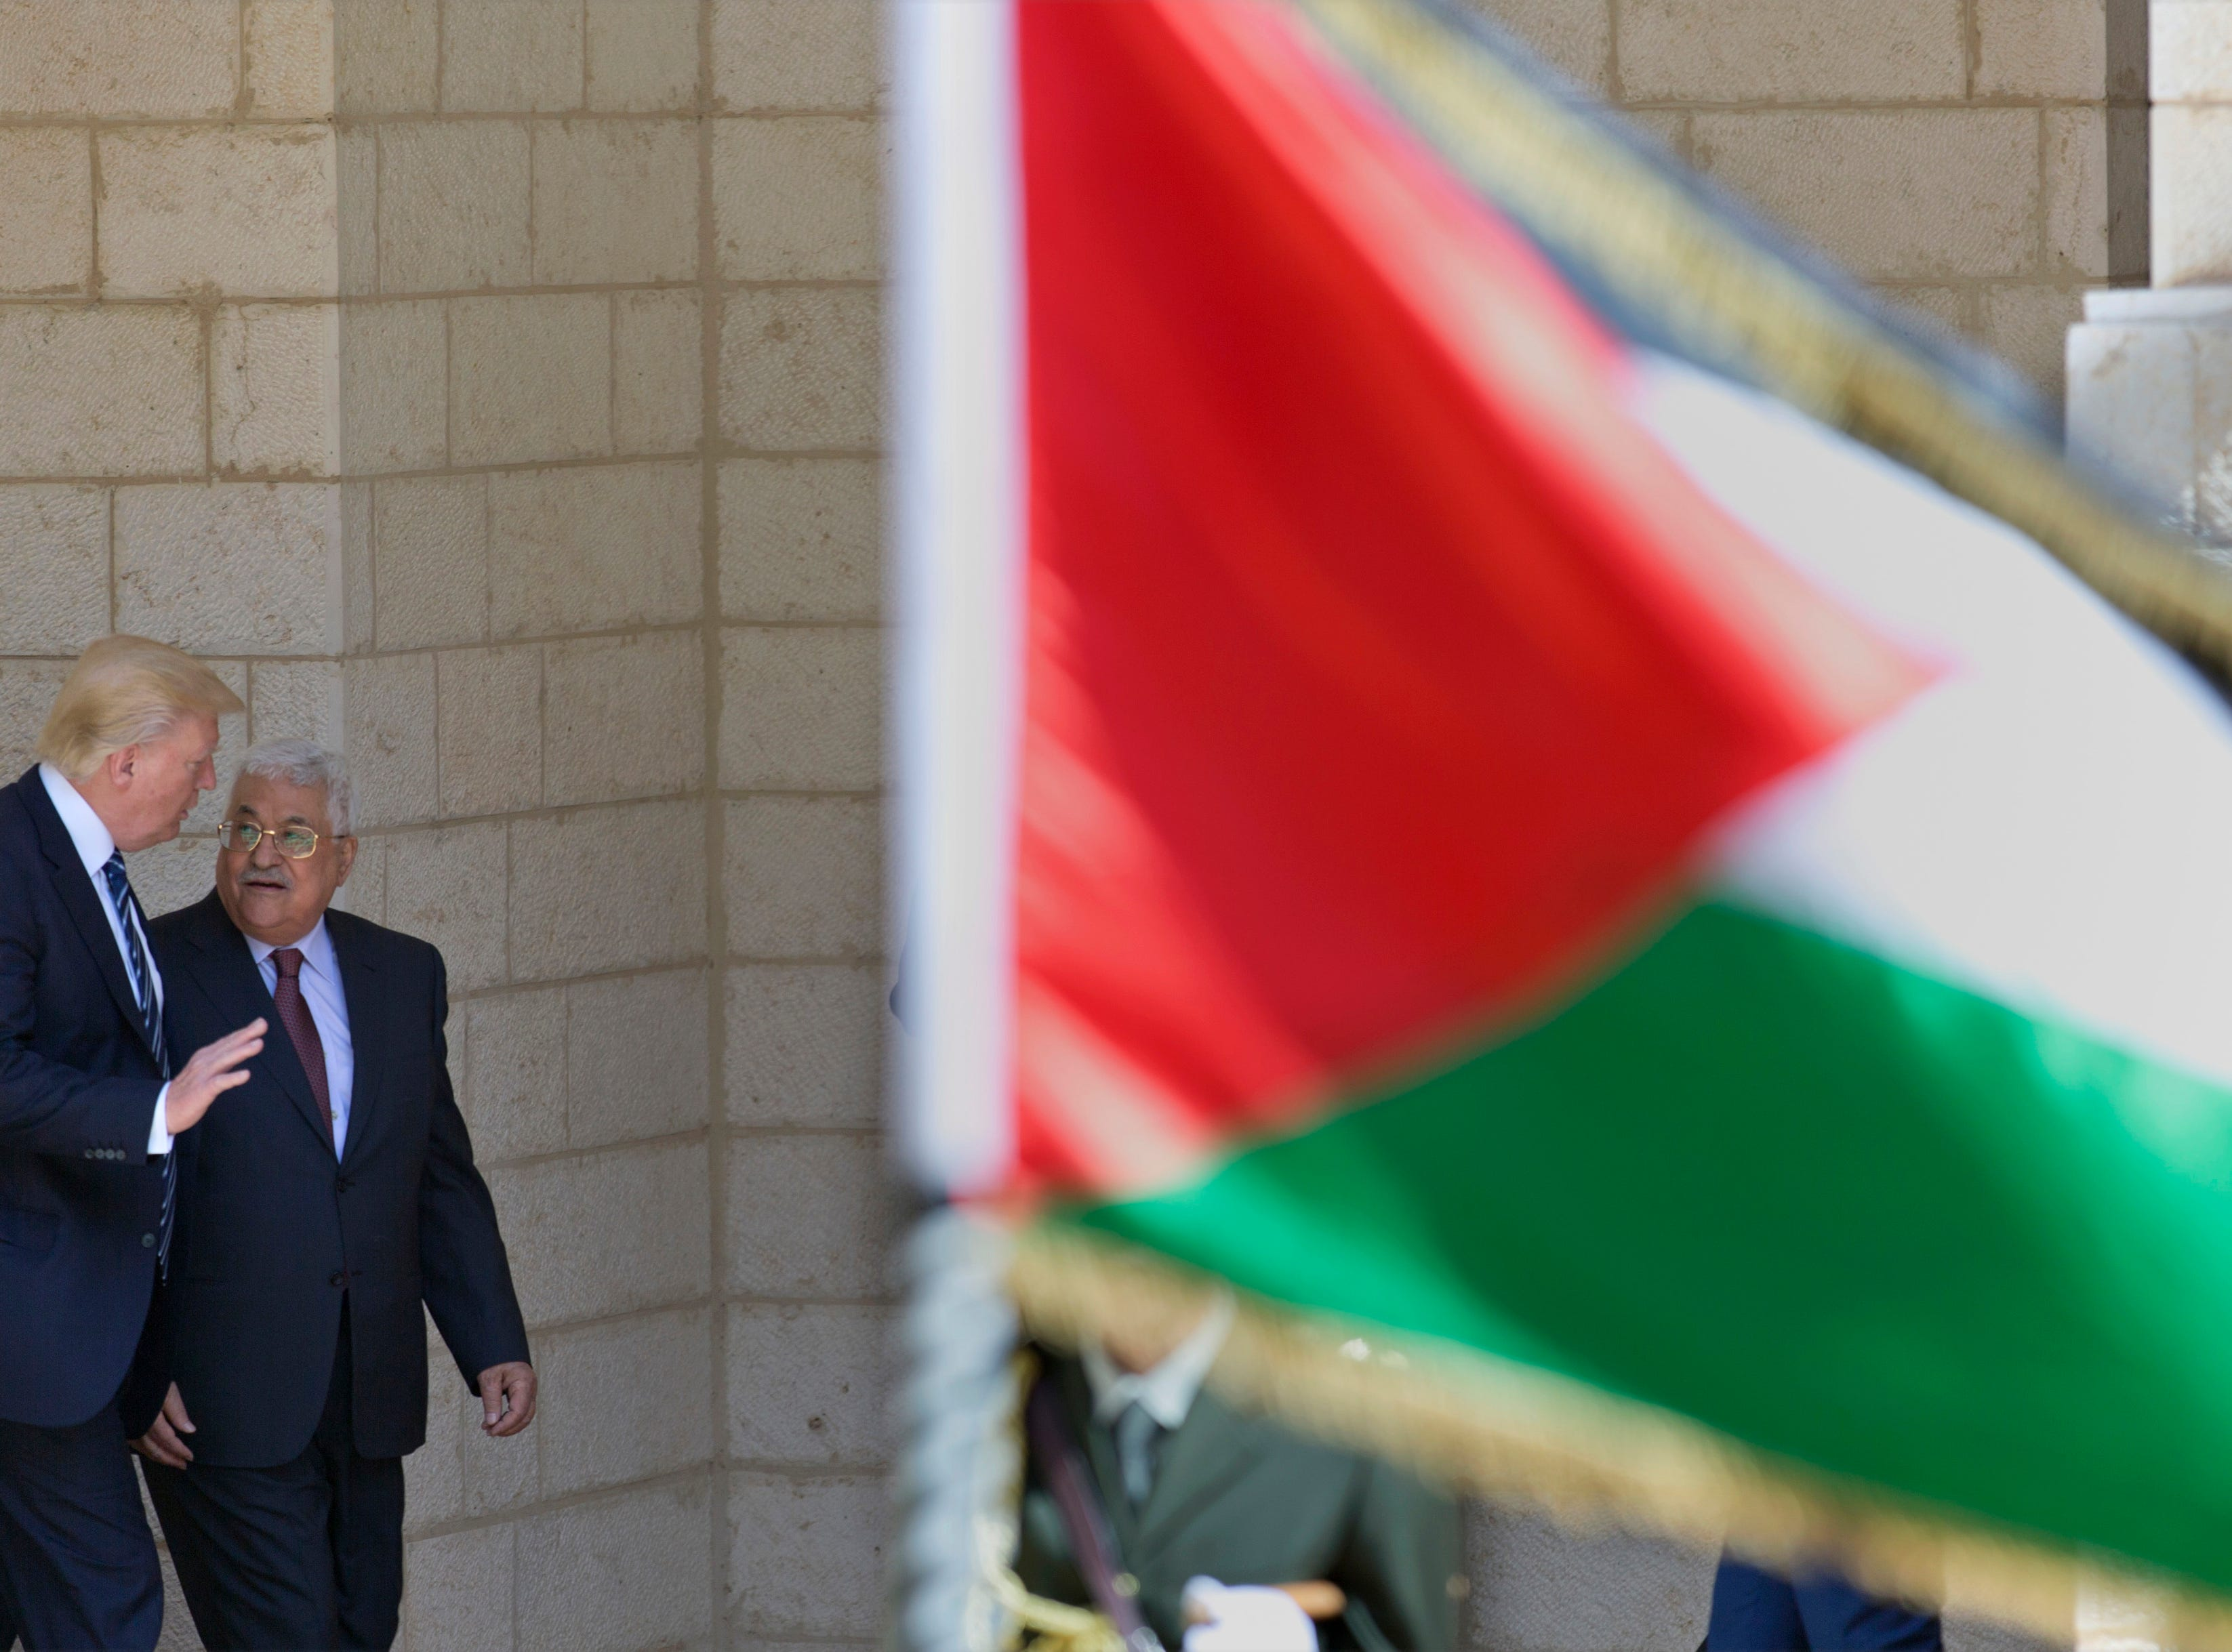 President Trump walks with Palestinian President Mahmoud Abbas after his arrival in the West Bank city of Bethlehem, on May 23, 2017.